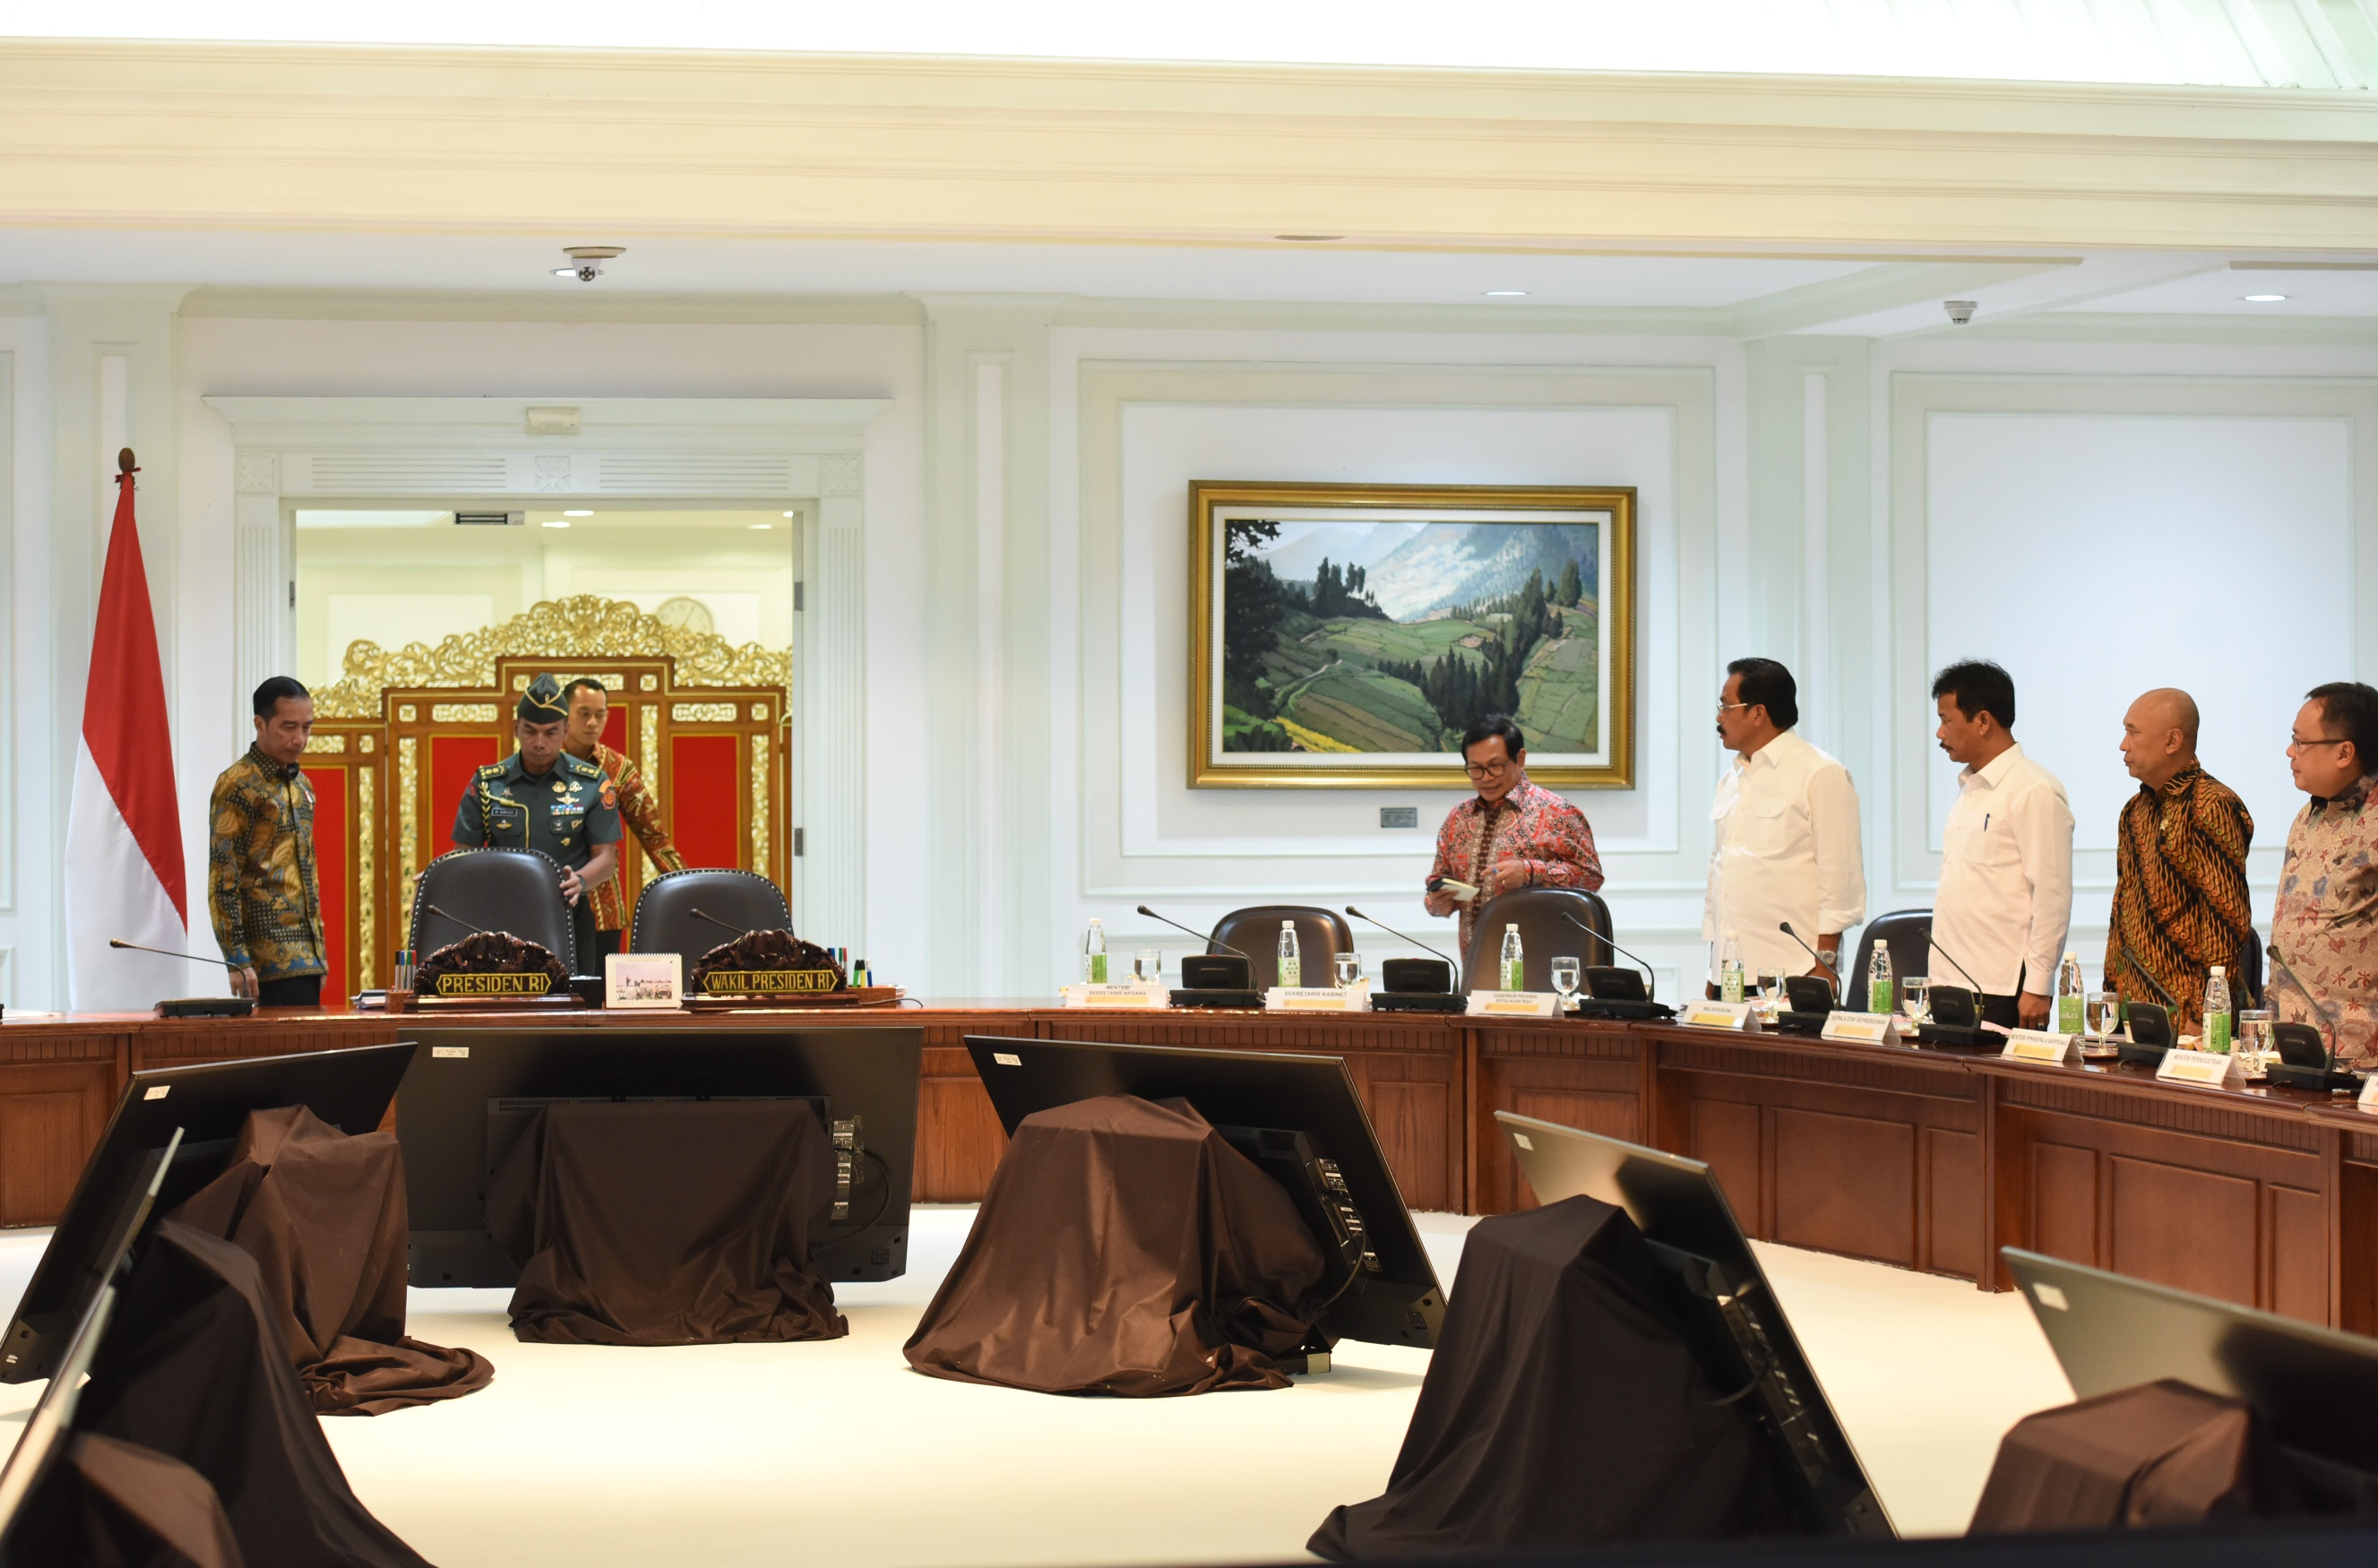 Governor of Riau Islands Nurdin Basirun meets President Jokowi in a limited meeting on Thursday (30/3), at the Presidential Office, Jakarta